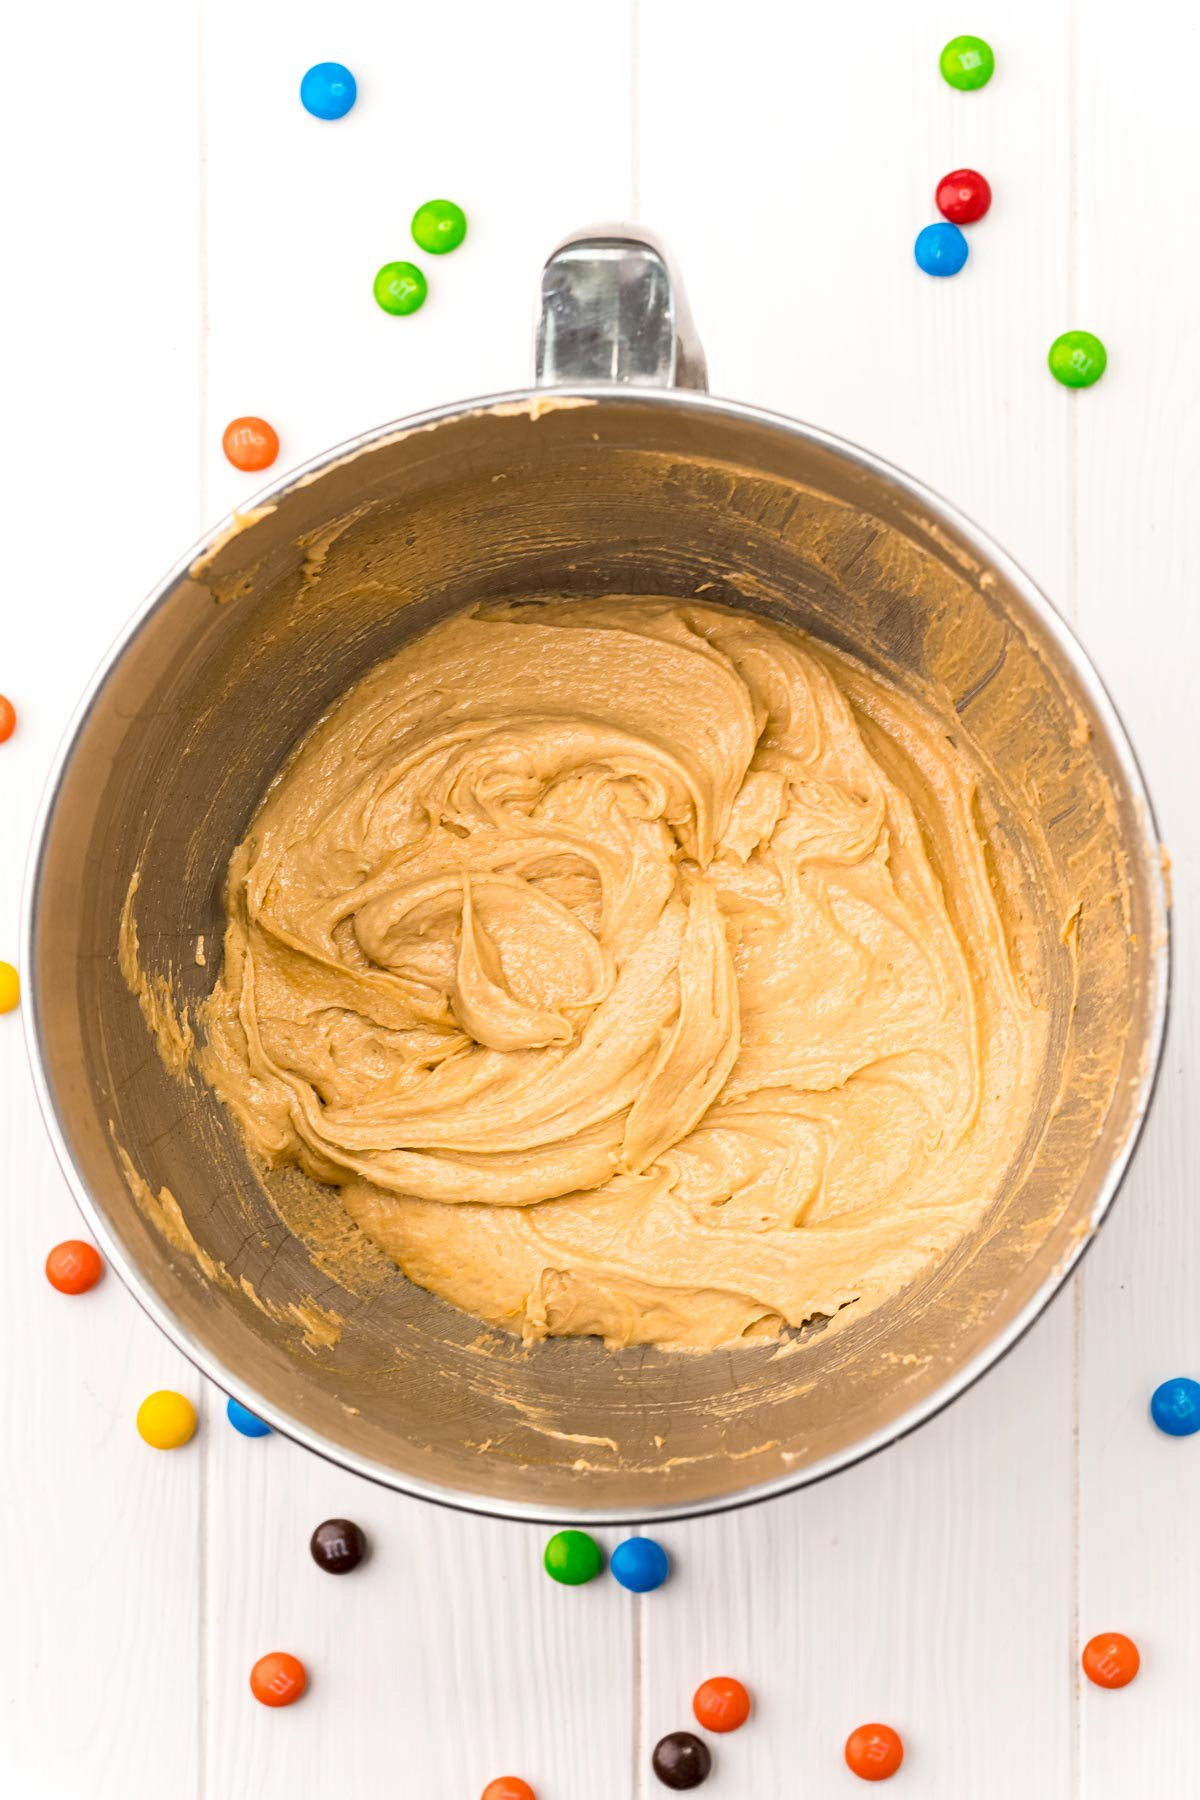 dough for monster cookies in a metal bowl